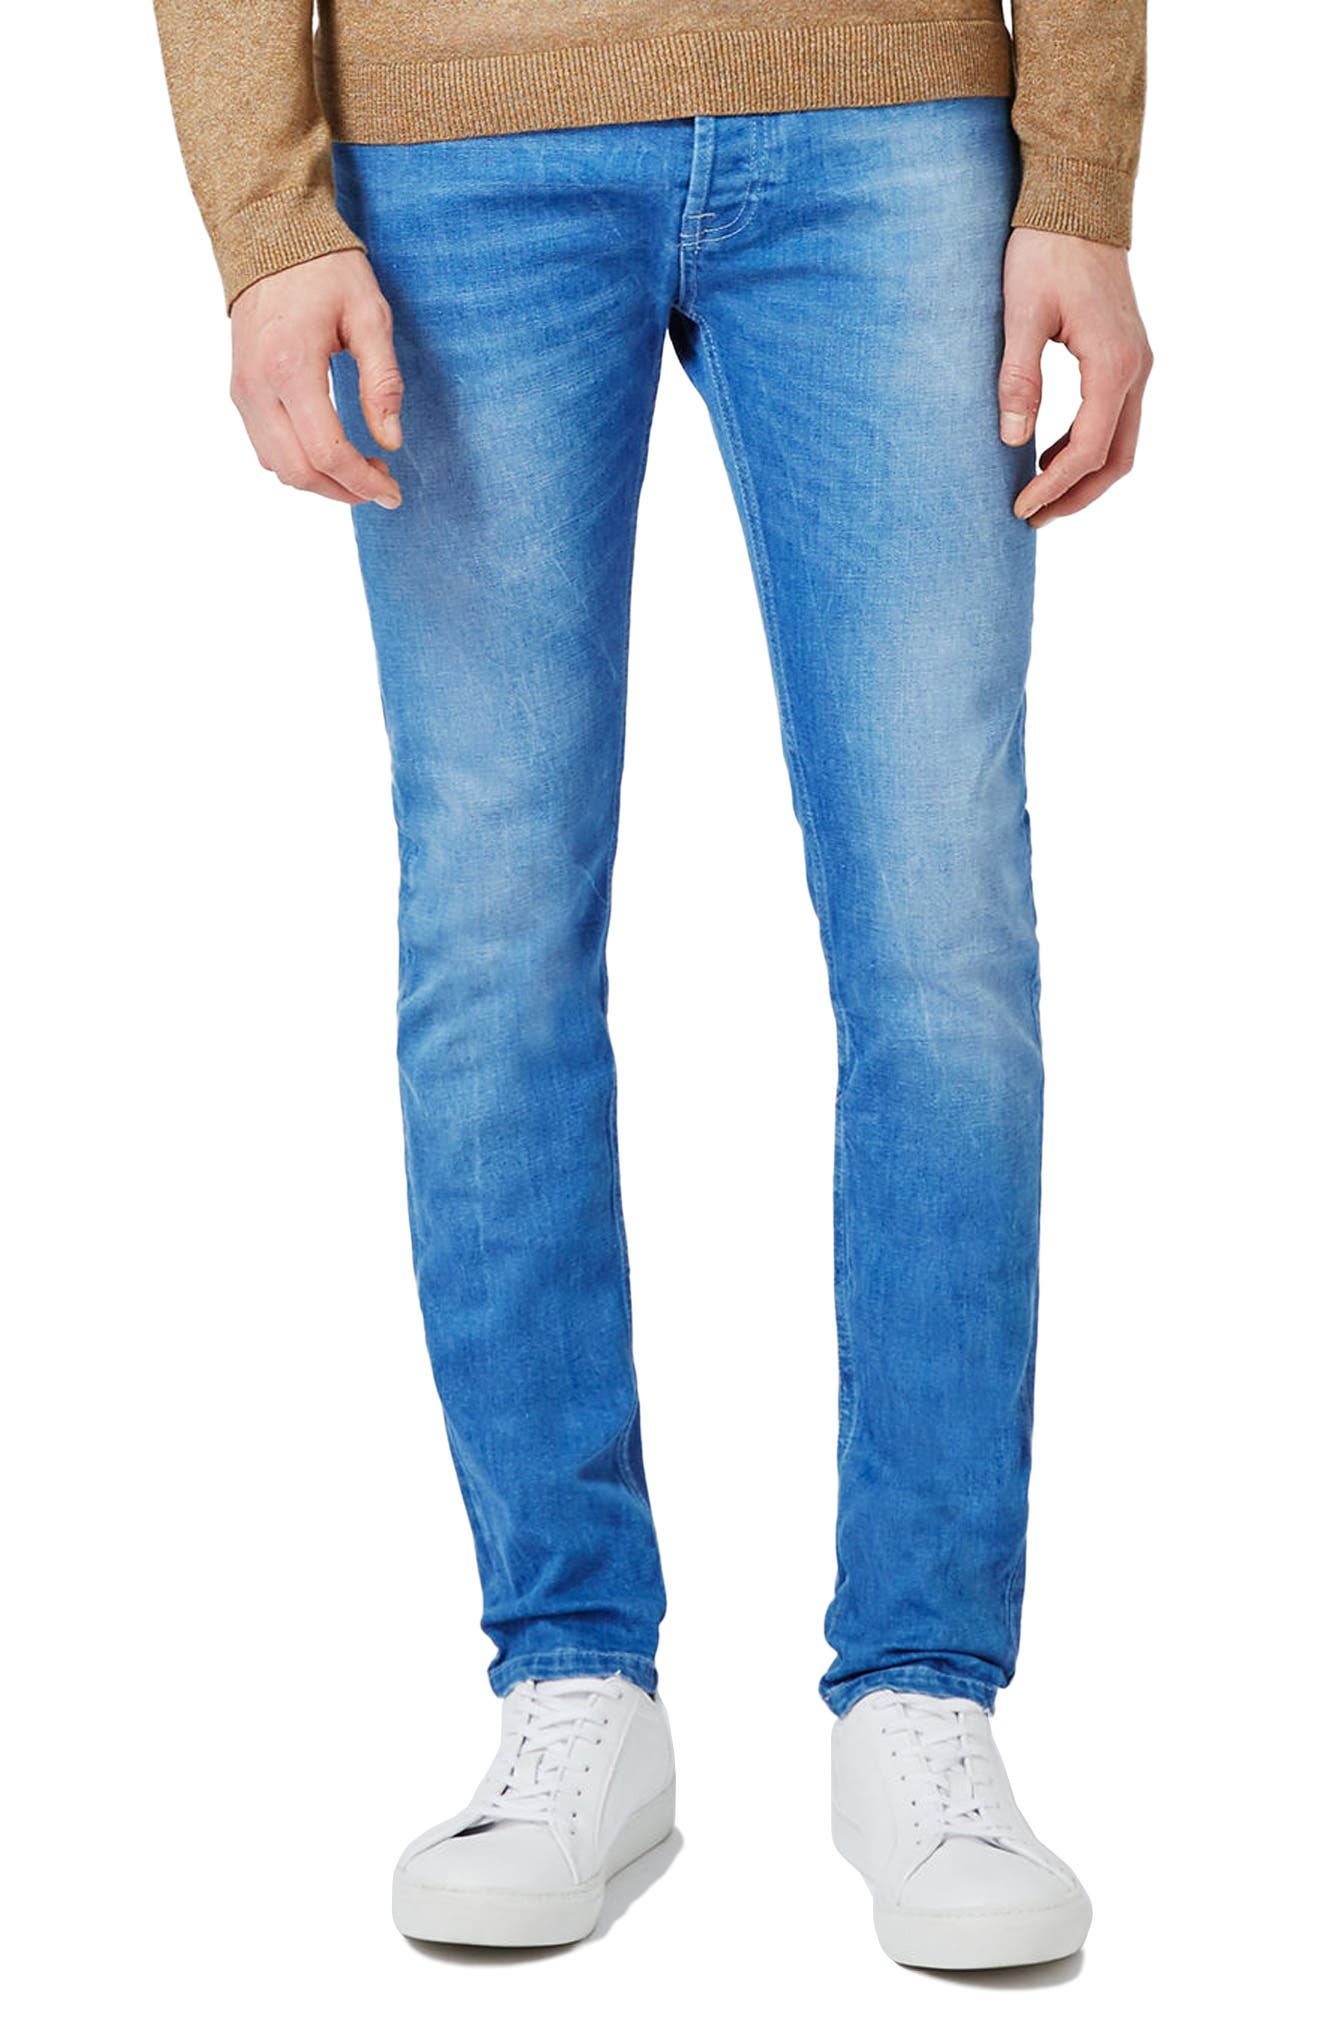 Stretch Skinny Fit Jeans,                             Main thumbnail 1, color,                             400